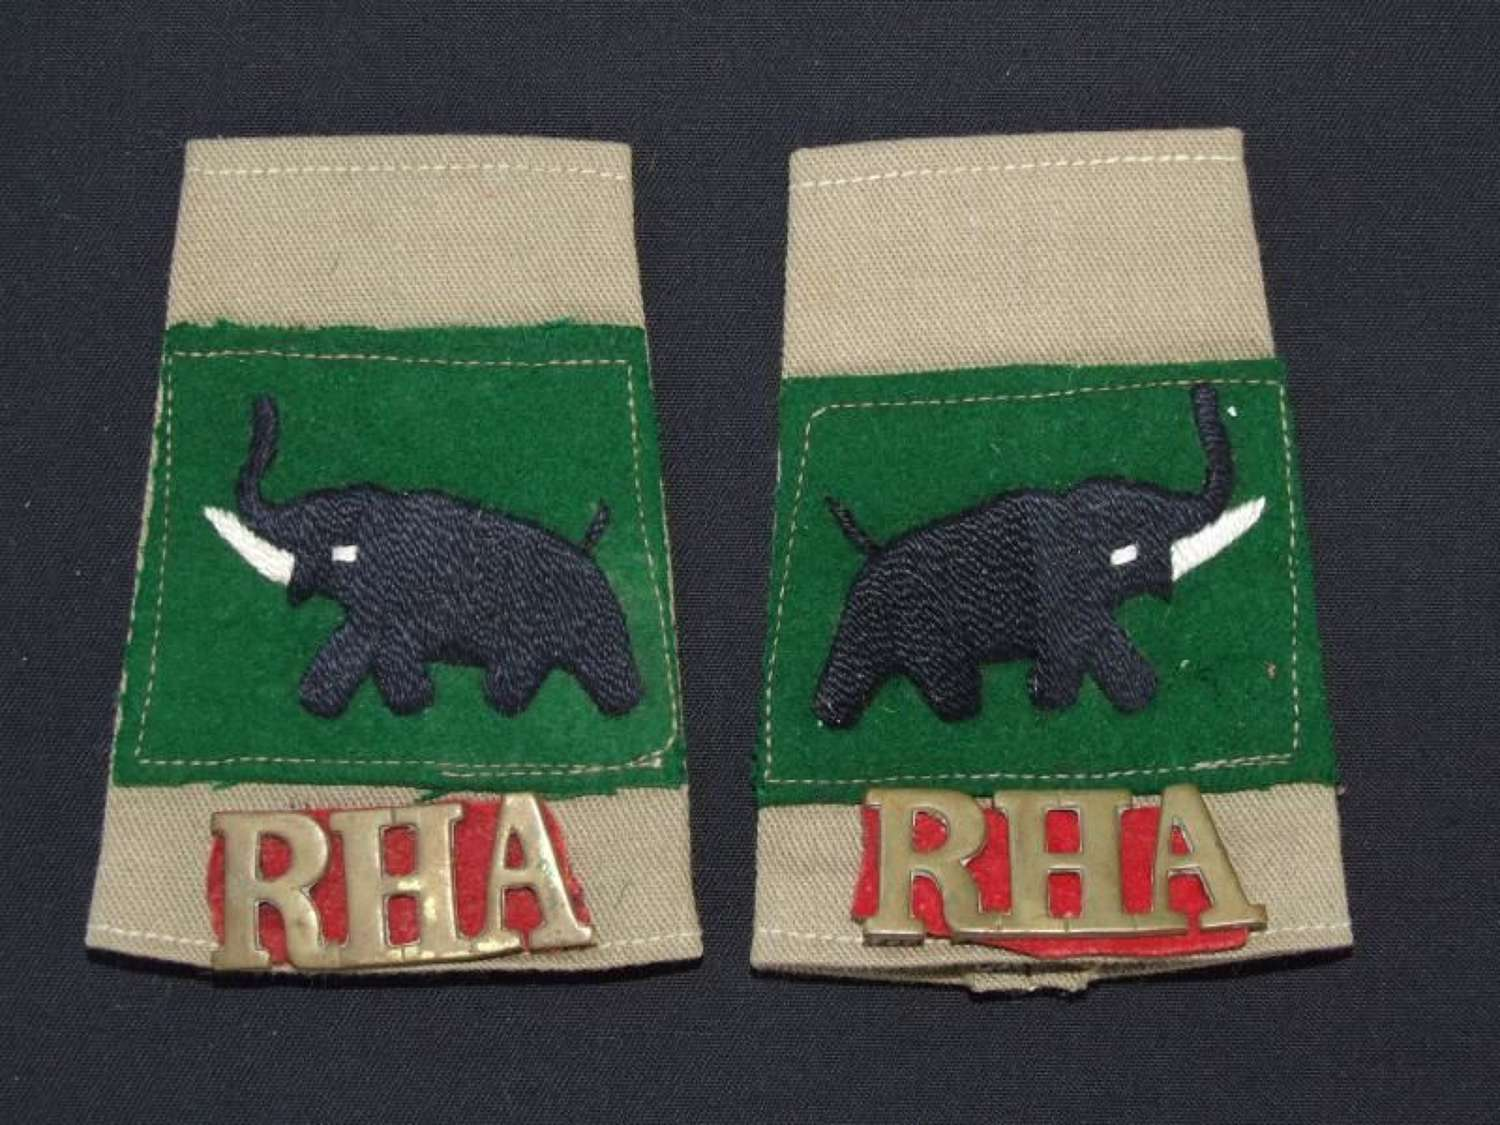 Shoulder Slips to the 31st Indian Armoured Division, 14th Battery Roya